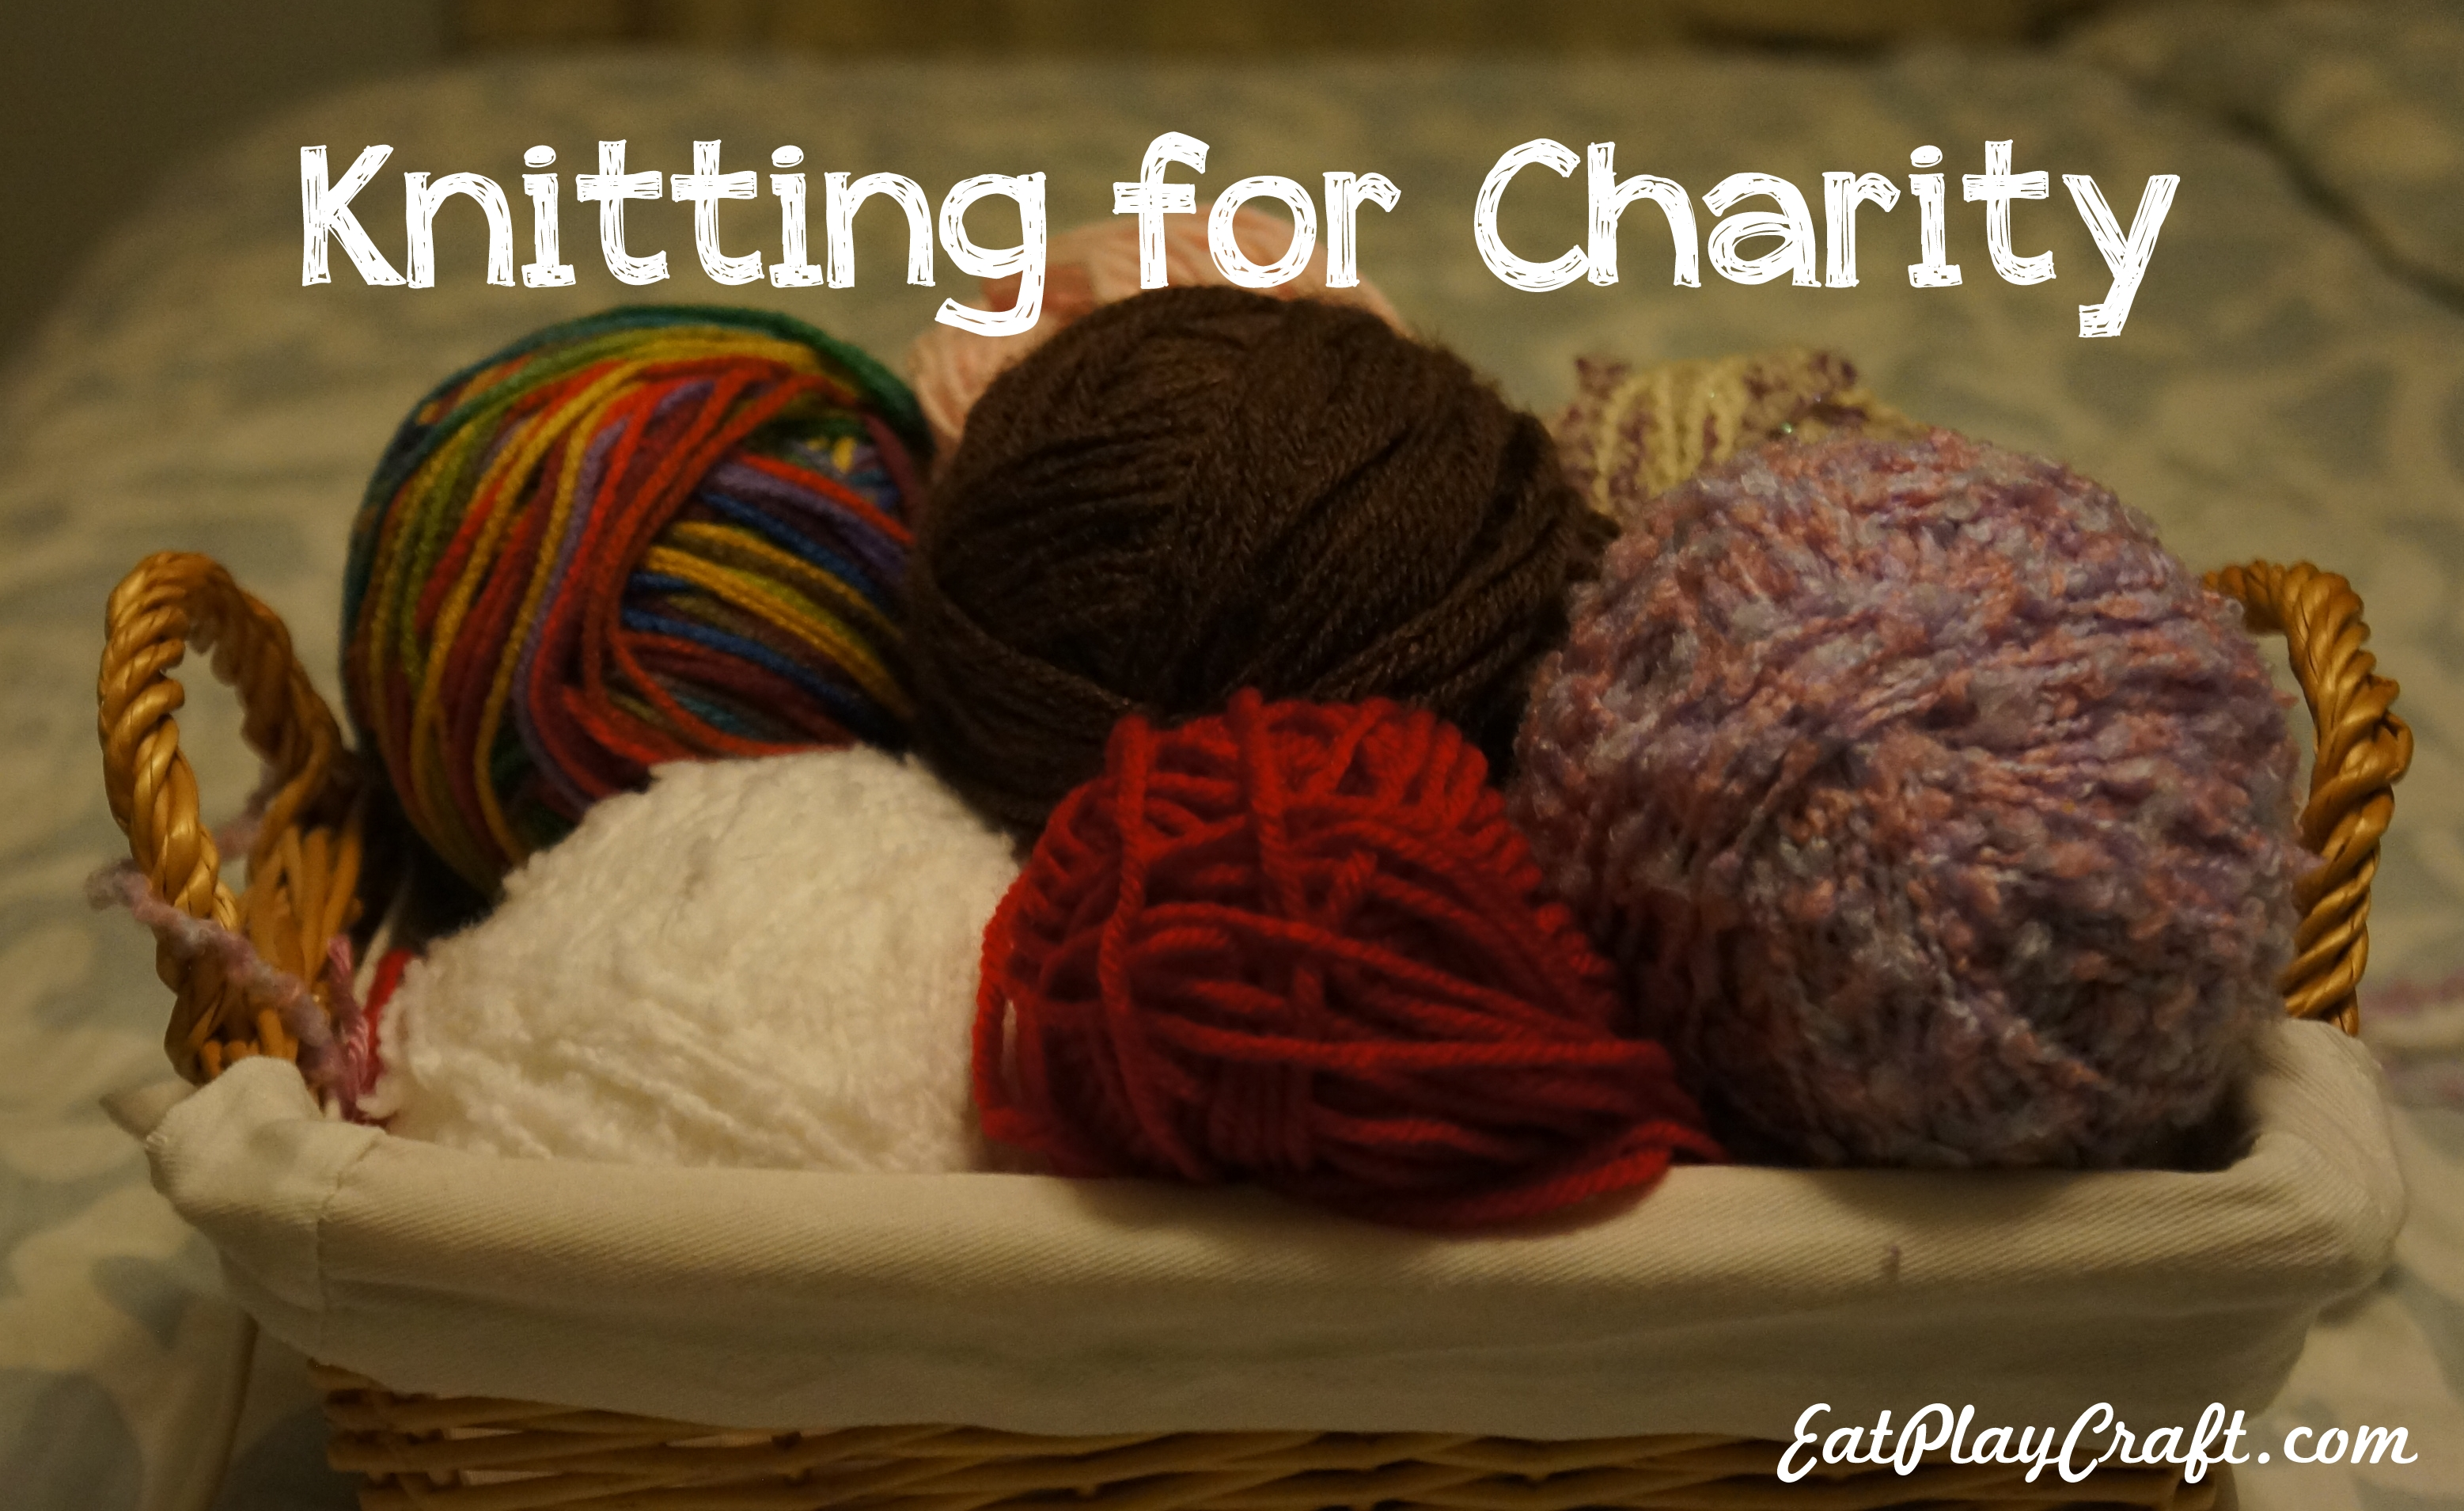 Knitting for Charity | Eat. Play. Craft.